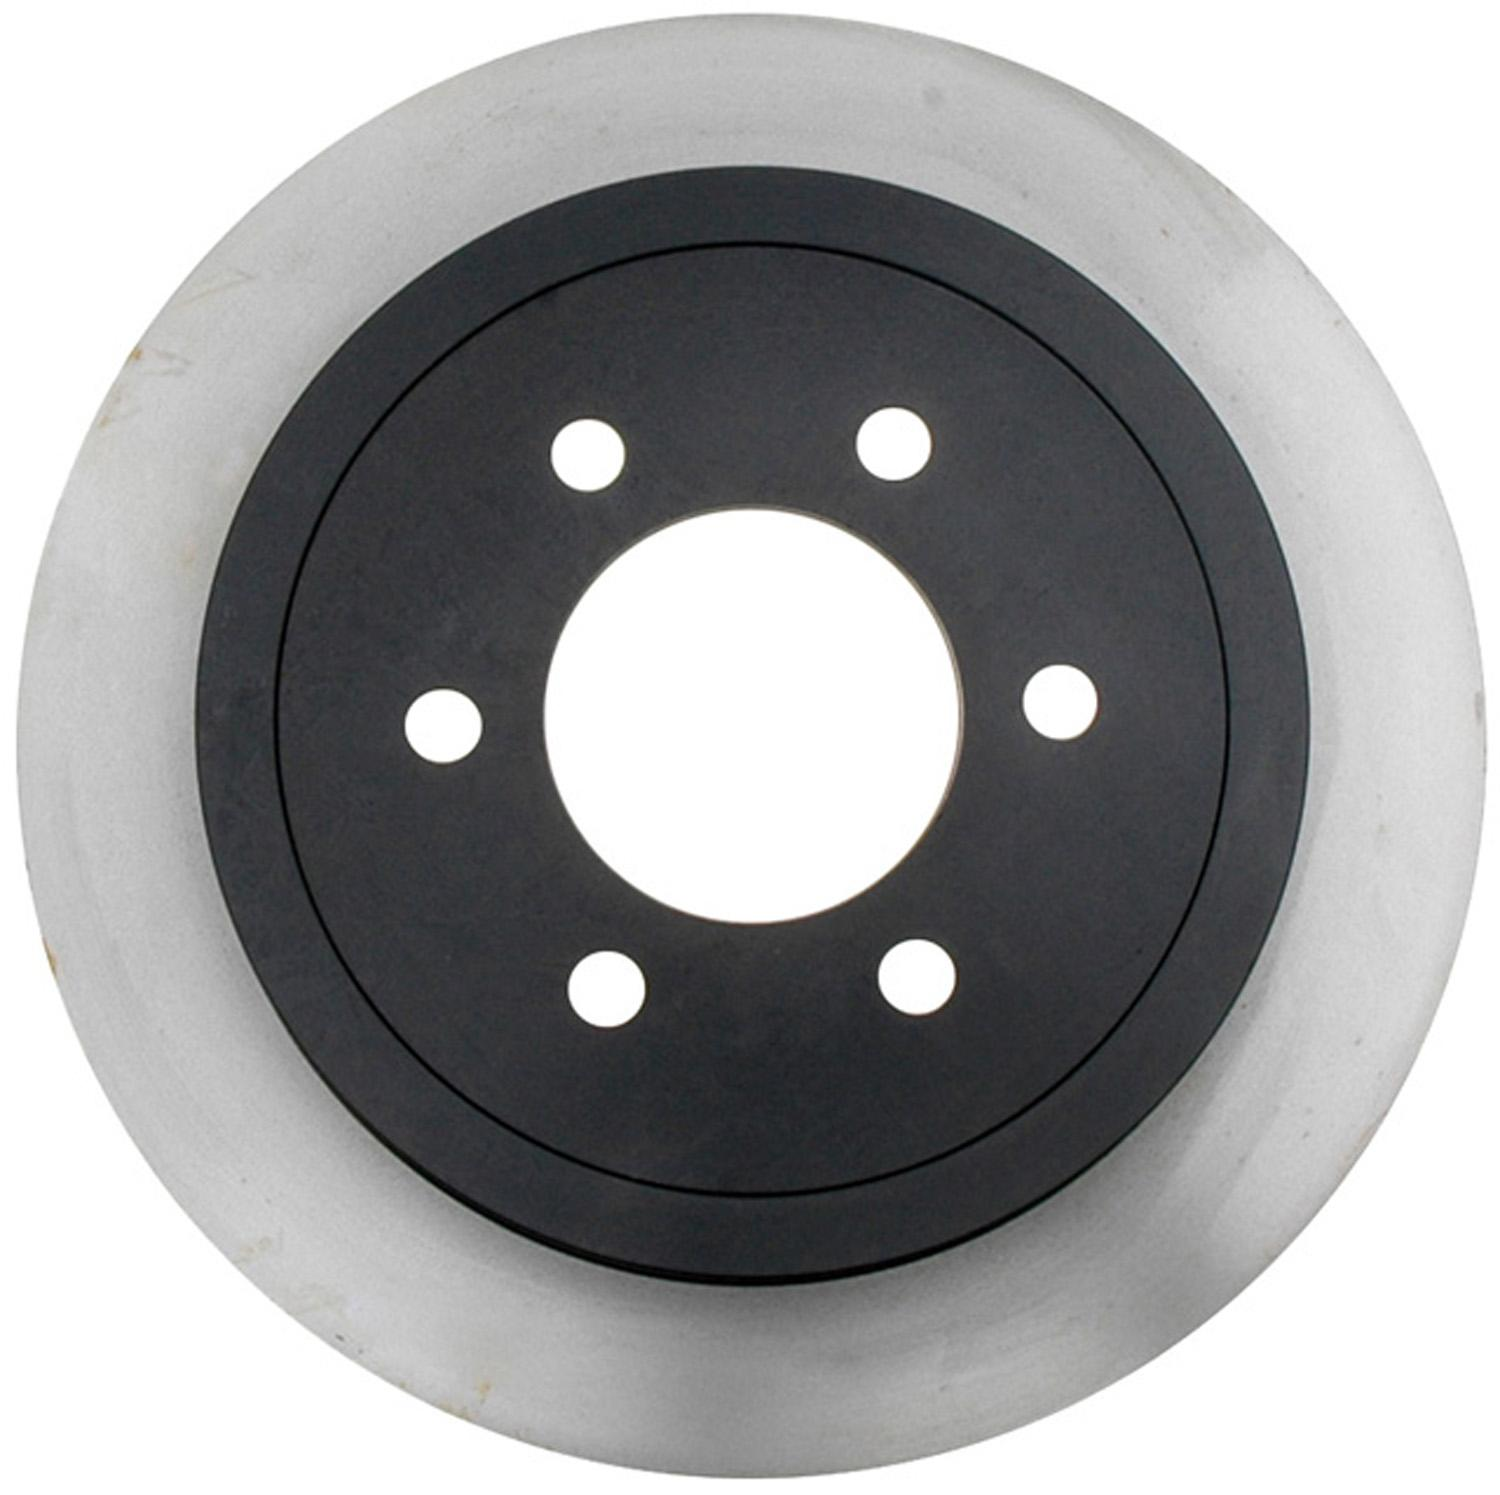 ACDELCO PROFESSIONAL BRAKES - Disc Brake Rotor (Rear) - ADU 18A1627